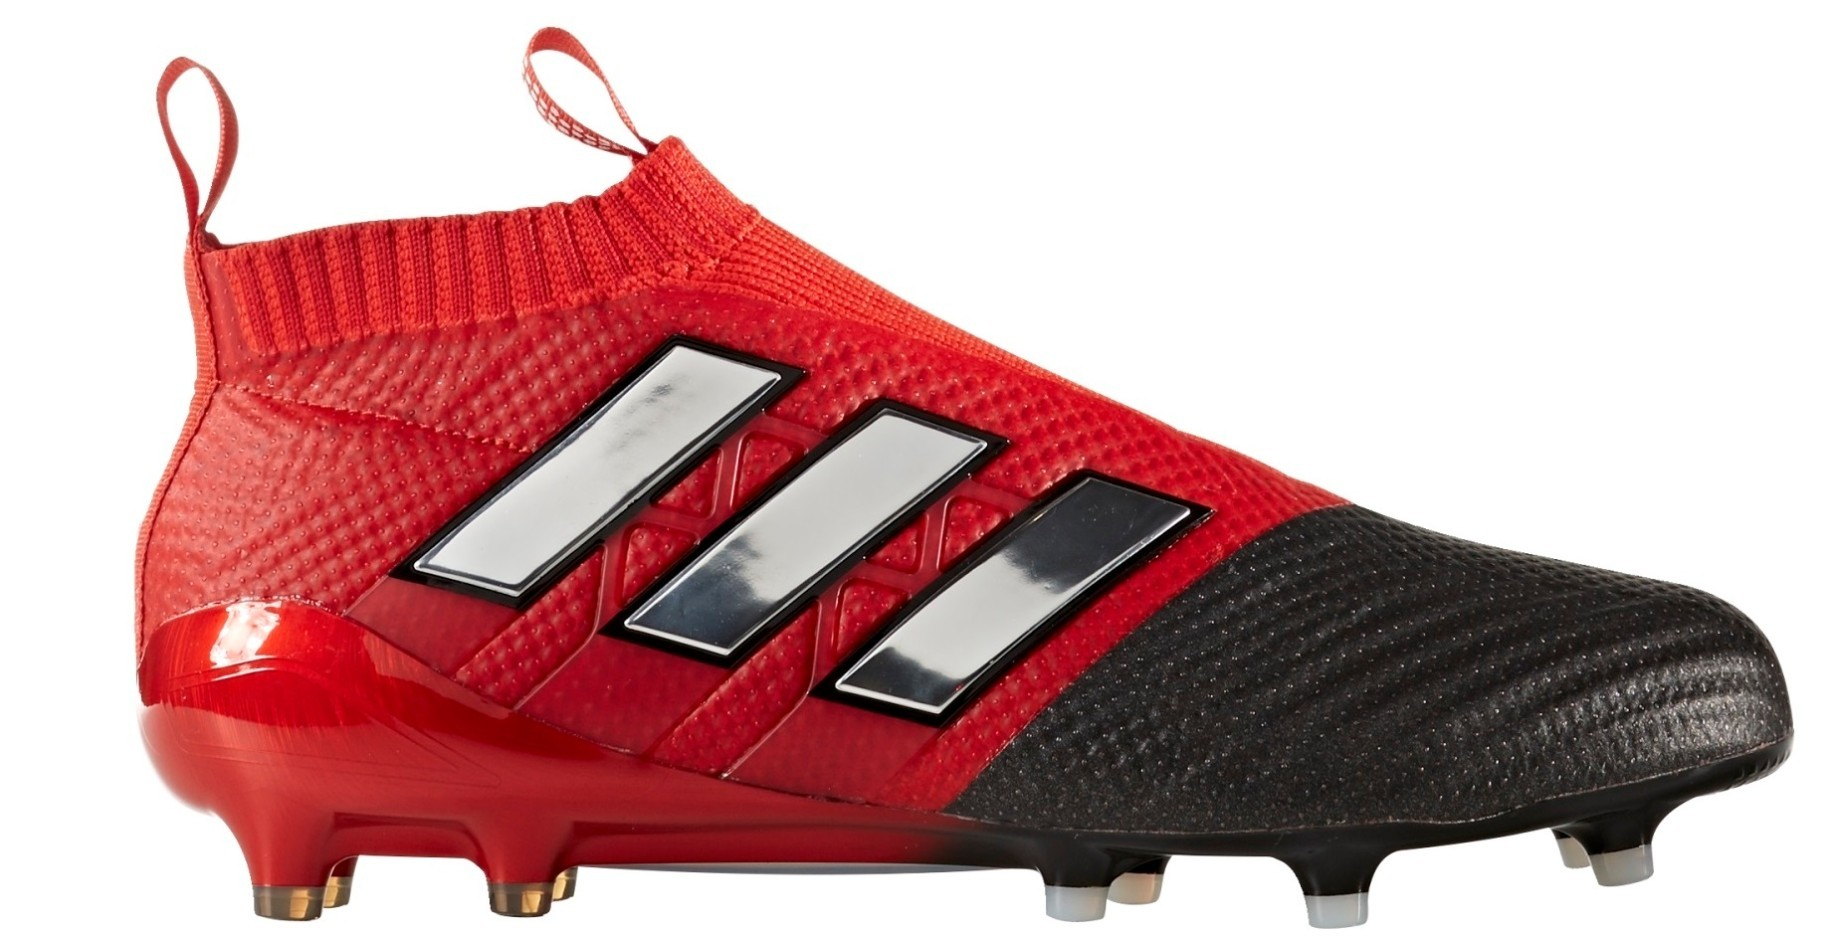 superior quality 1b585 ae697 Adidas Football boots Ace 17+ PureControl FG Red Limit Pack colore Red White  - Adidas - SportIT.com